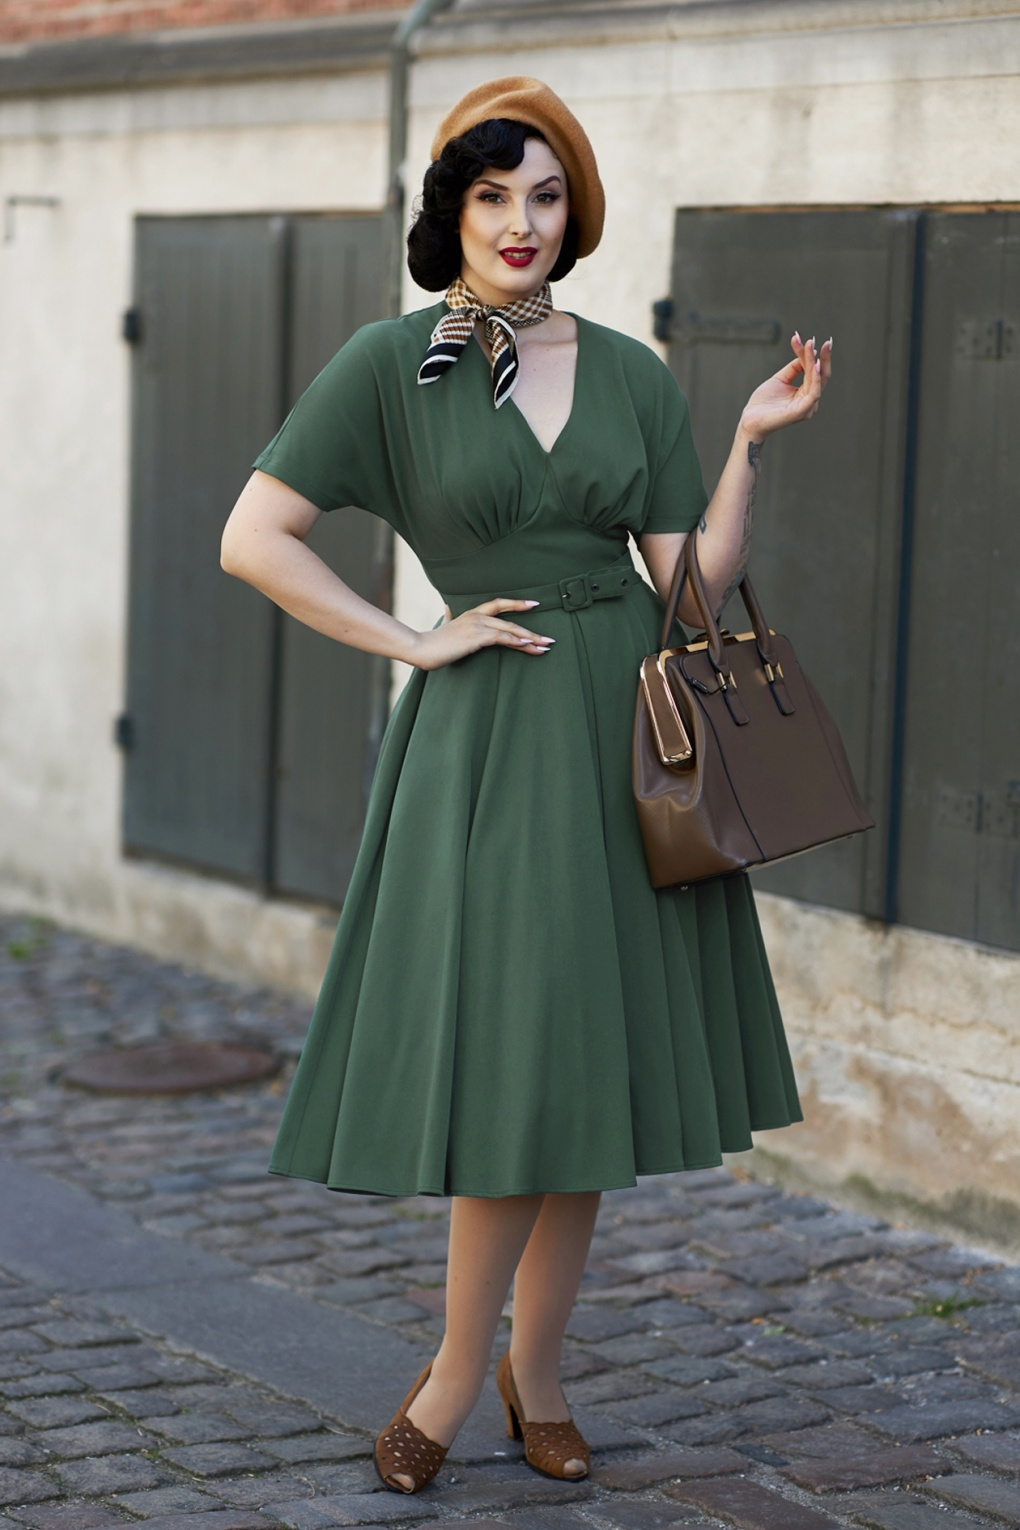 1950s Dresses, 50s Dresses | 1950s Style Dresses 50s Athena Dolman Swing Dress in Dark Green £94.85 AT vintagedancer.com